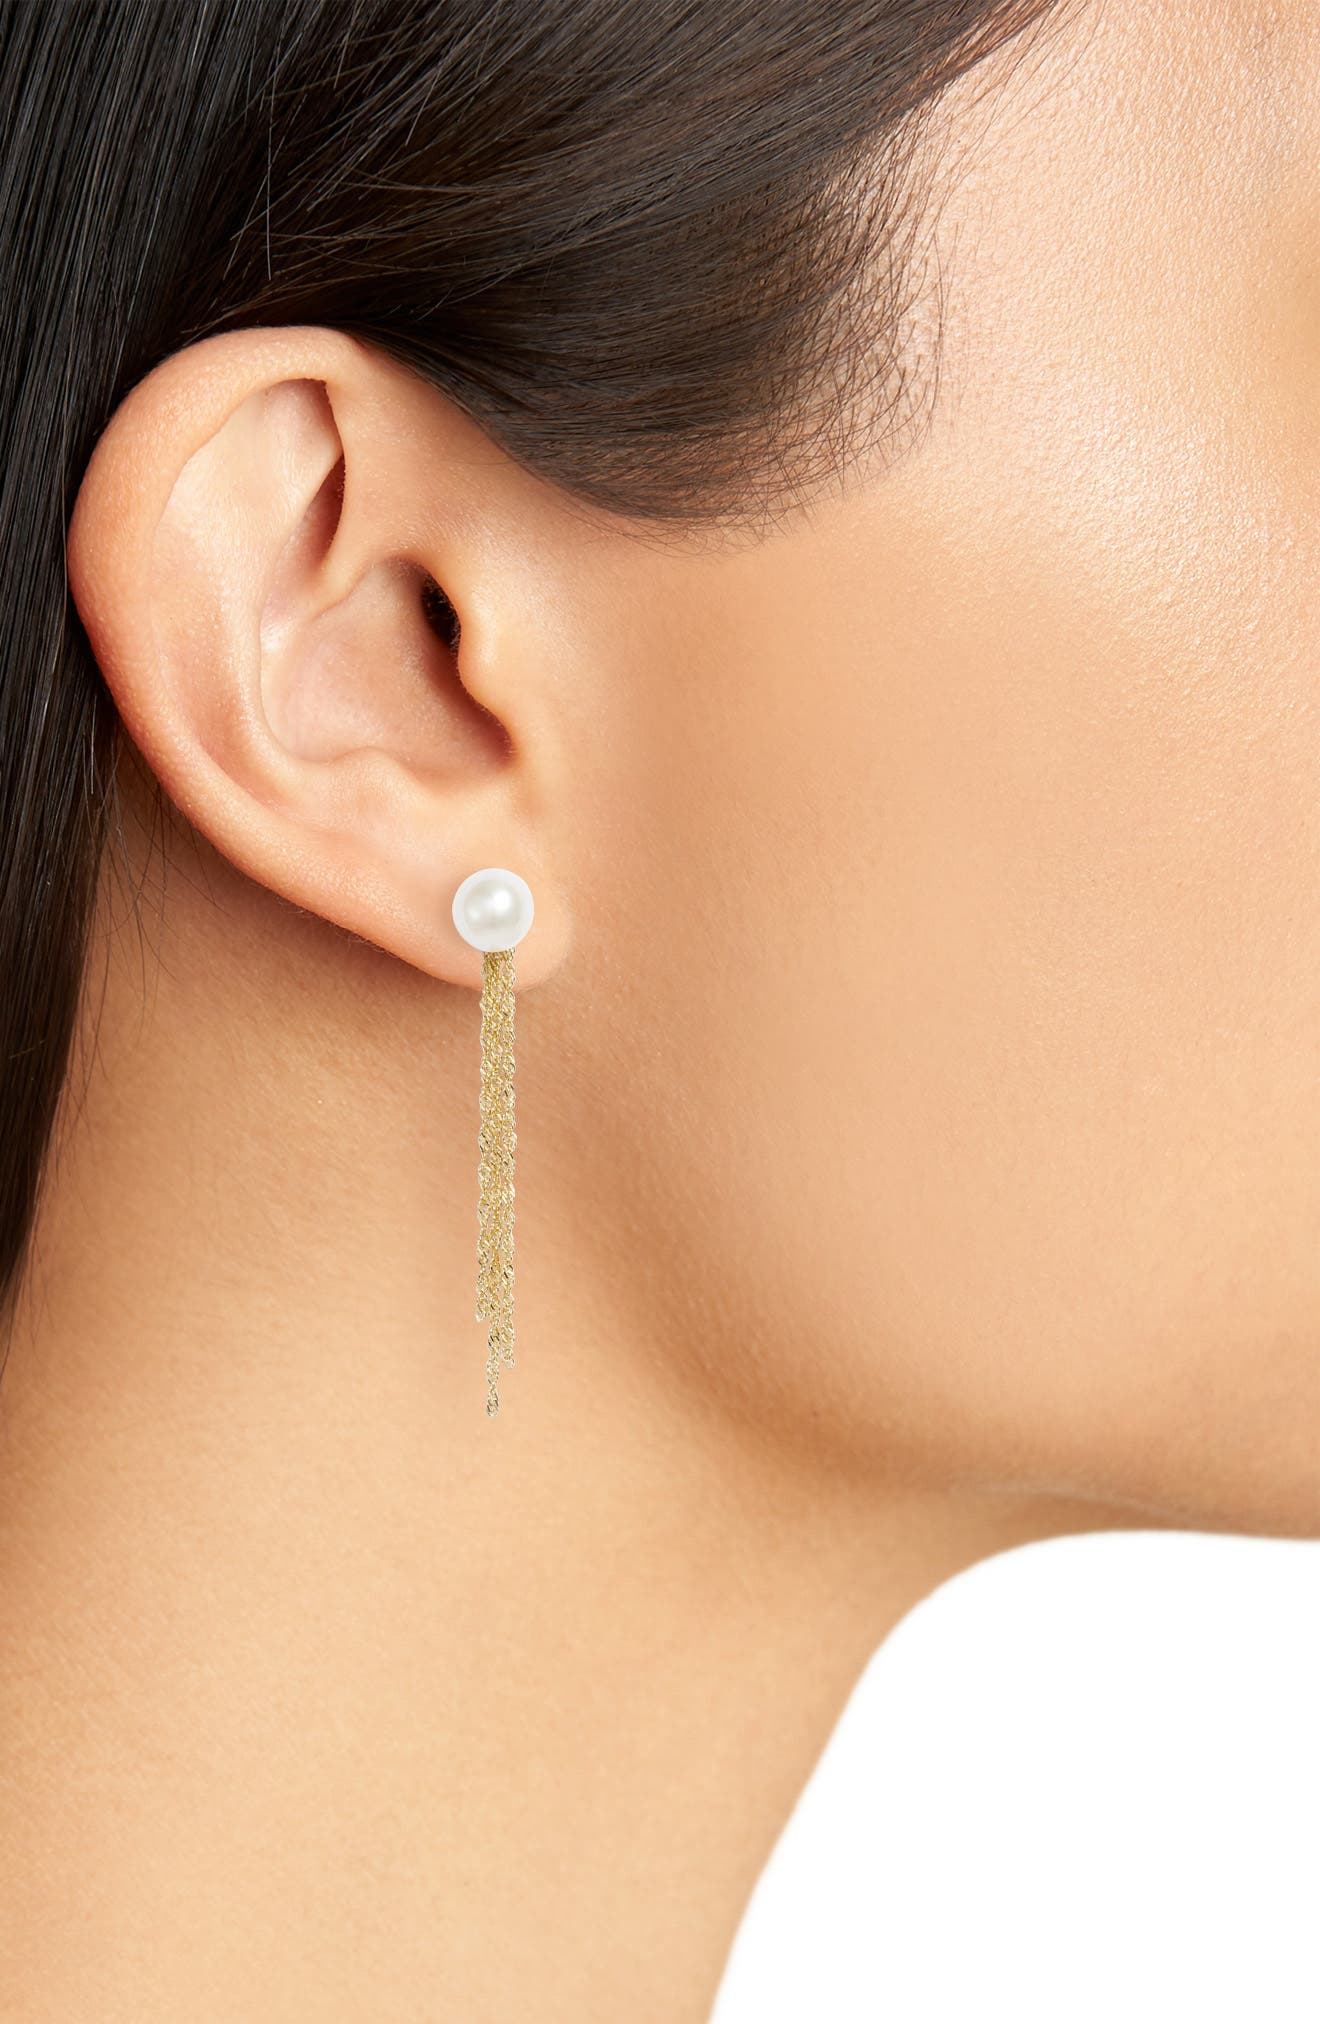 Gold Tassel Jacket Pearl Stud Earrings,                             Alternate thumbnail 2, color,                             YELLOW GOLD/ PEARL